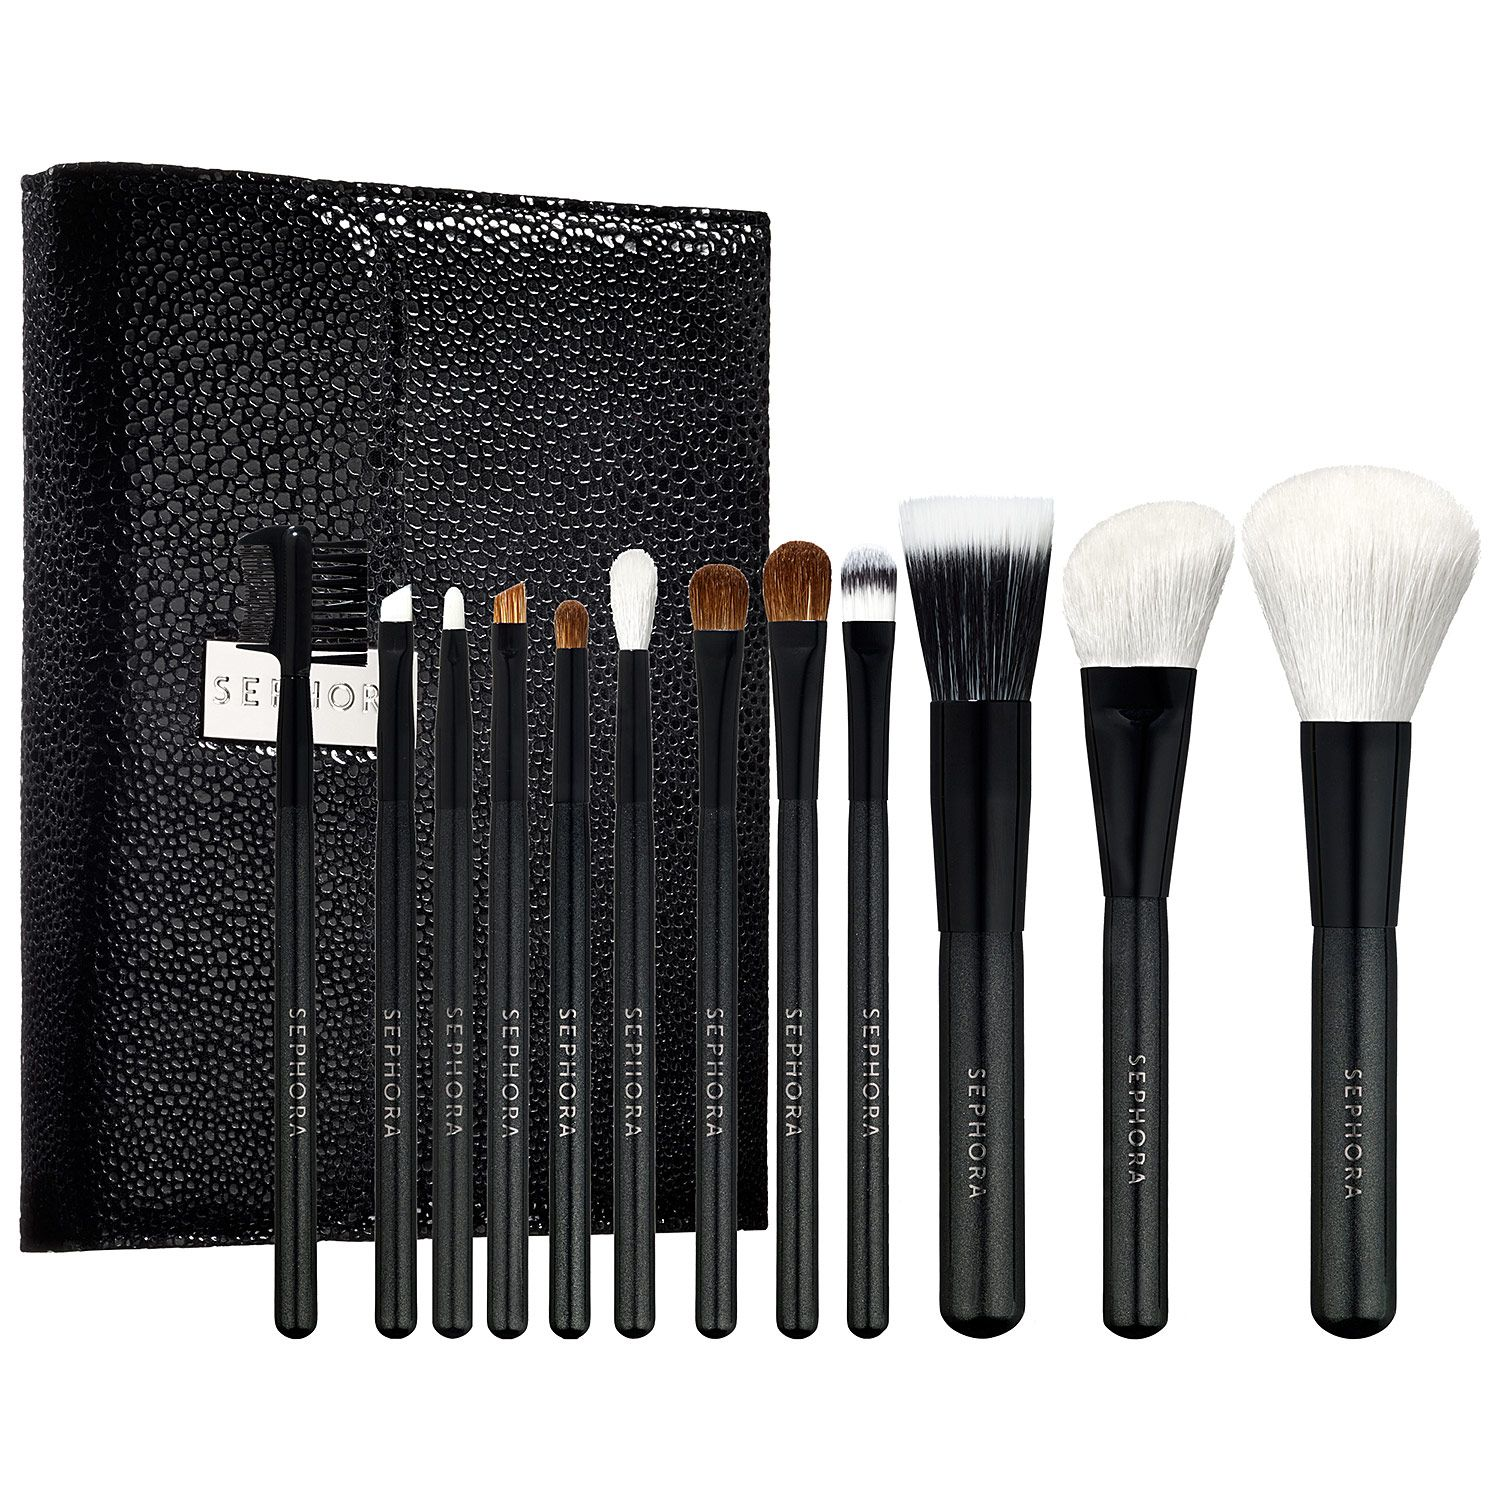 SEPHORA COLLECTION Prestige Luxe Brush Set Sephora gifts